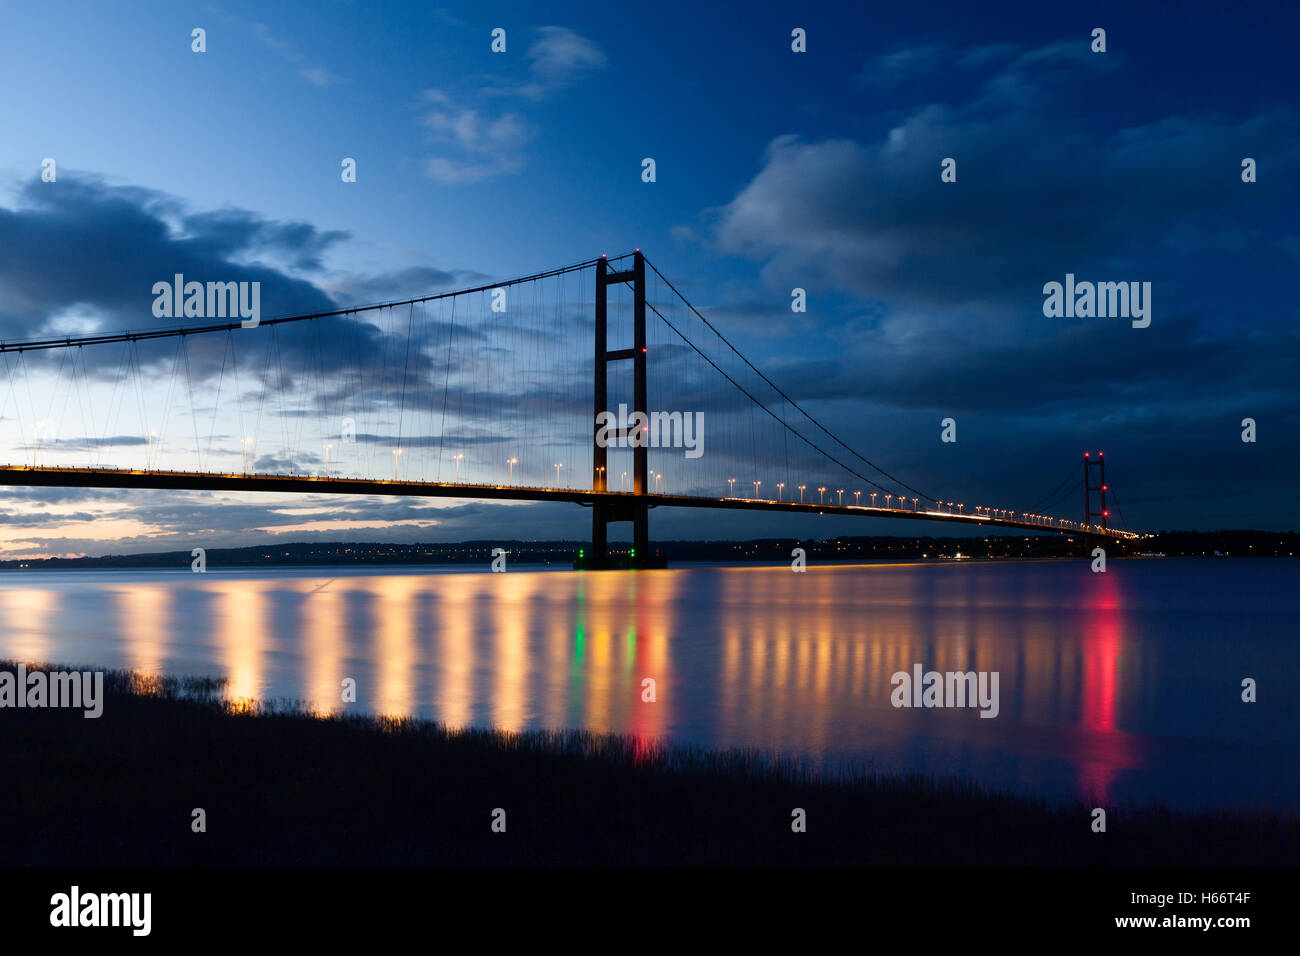 The Humber Bridge and the River Humber after dark. Barton-upon-Humber, North Lincolnshire, UK. 17th October 2016. - Stock Image